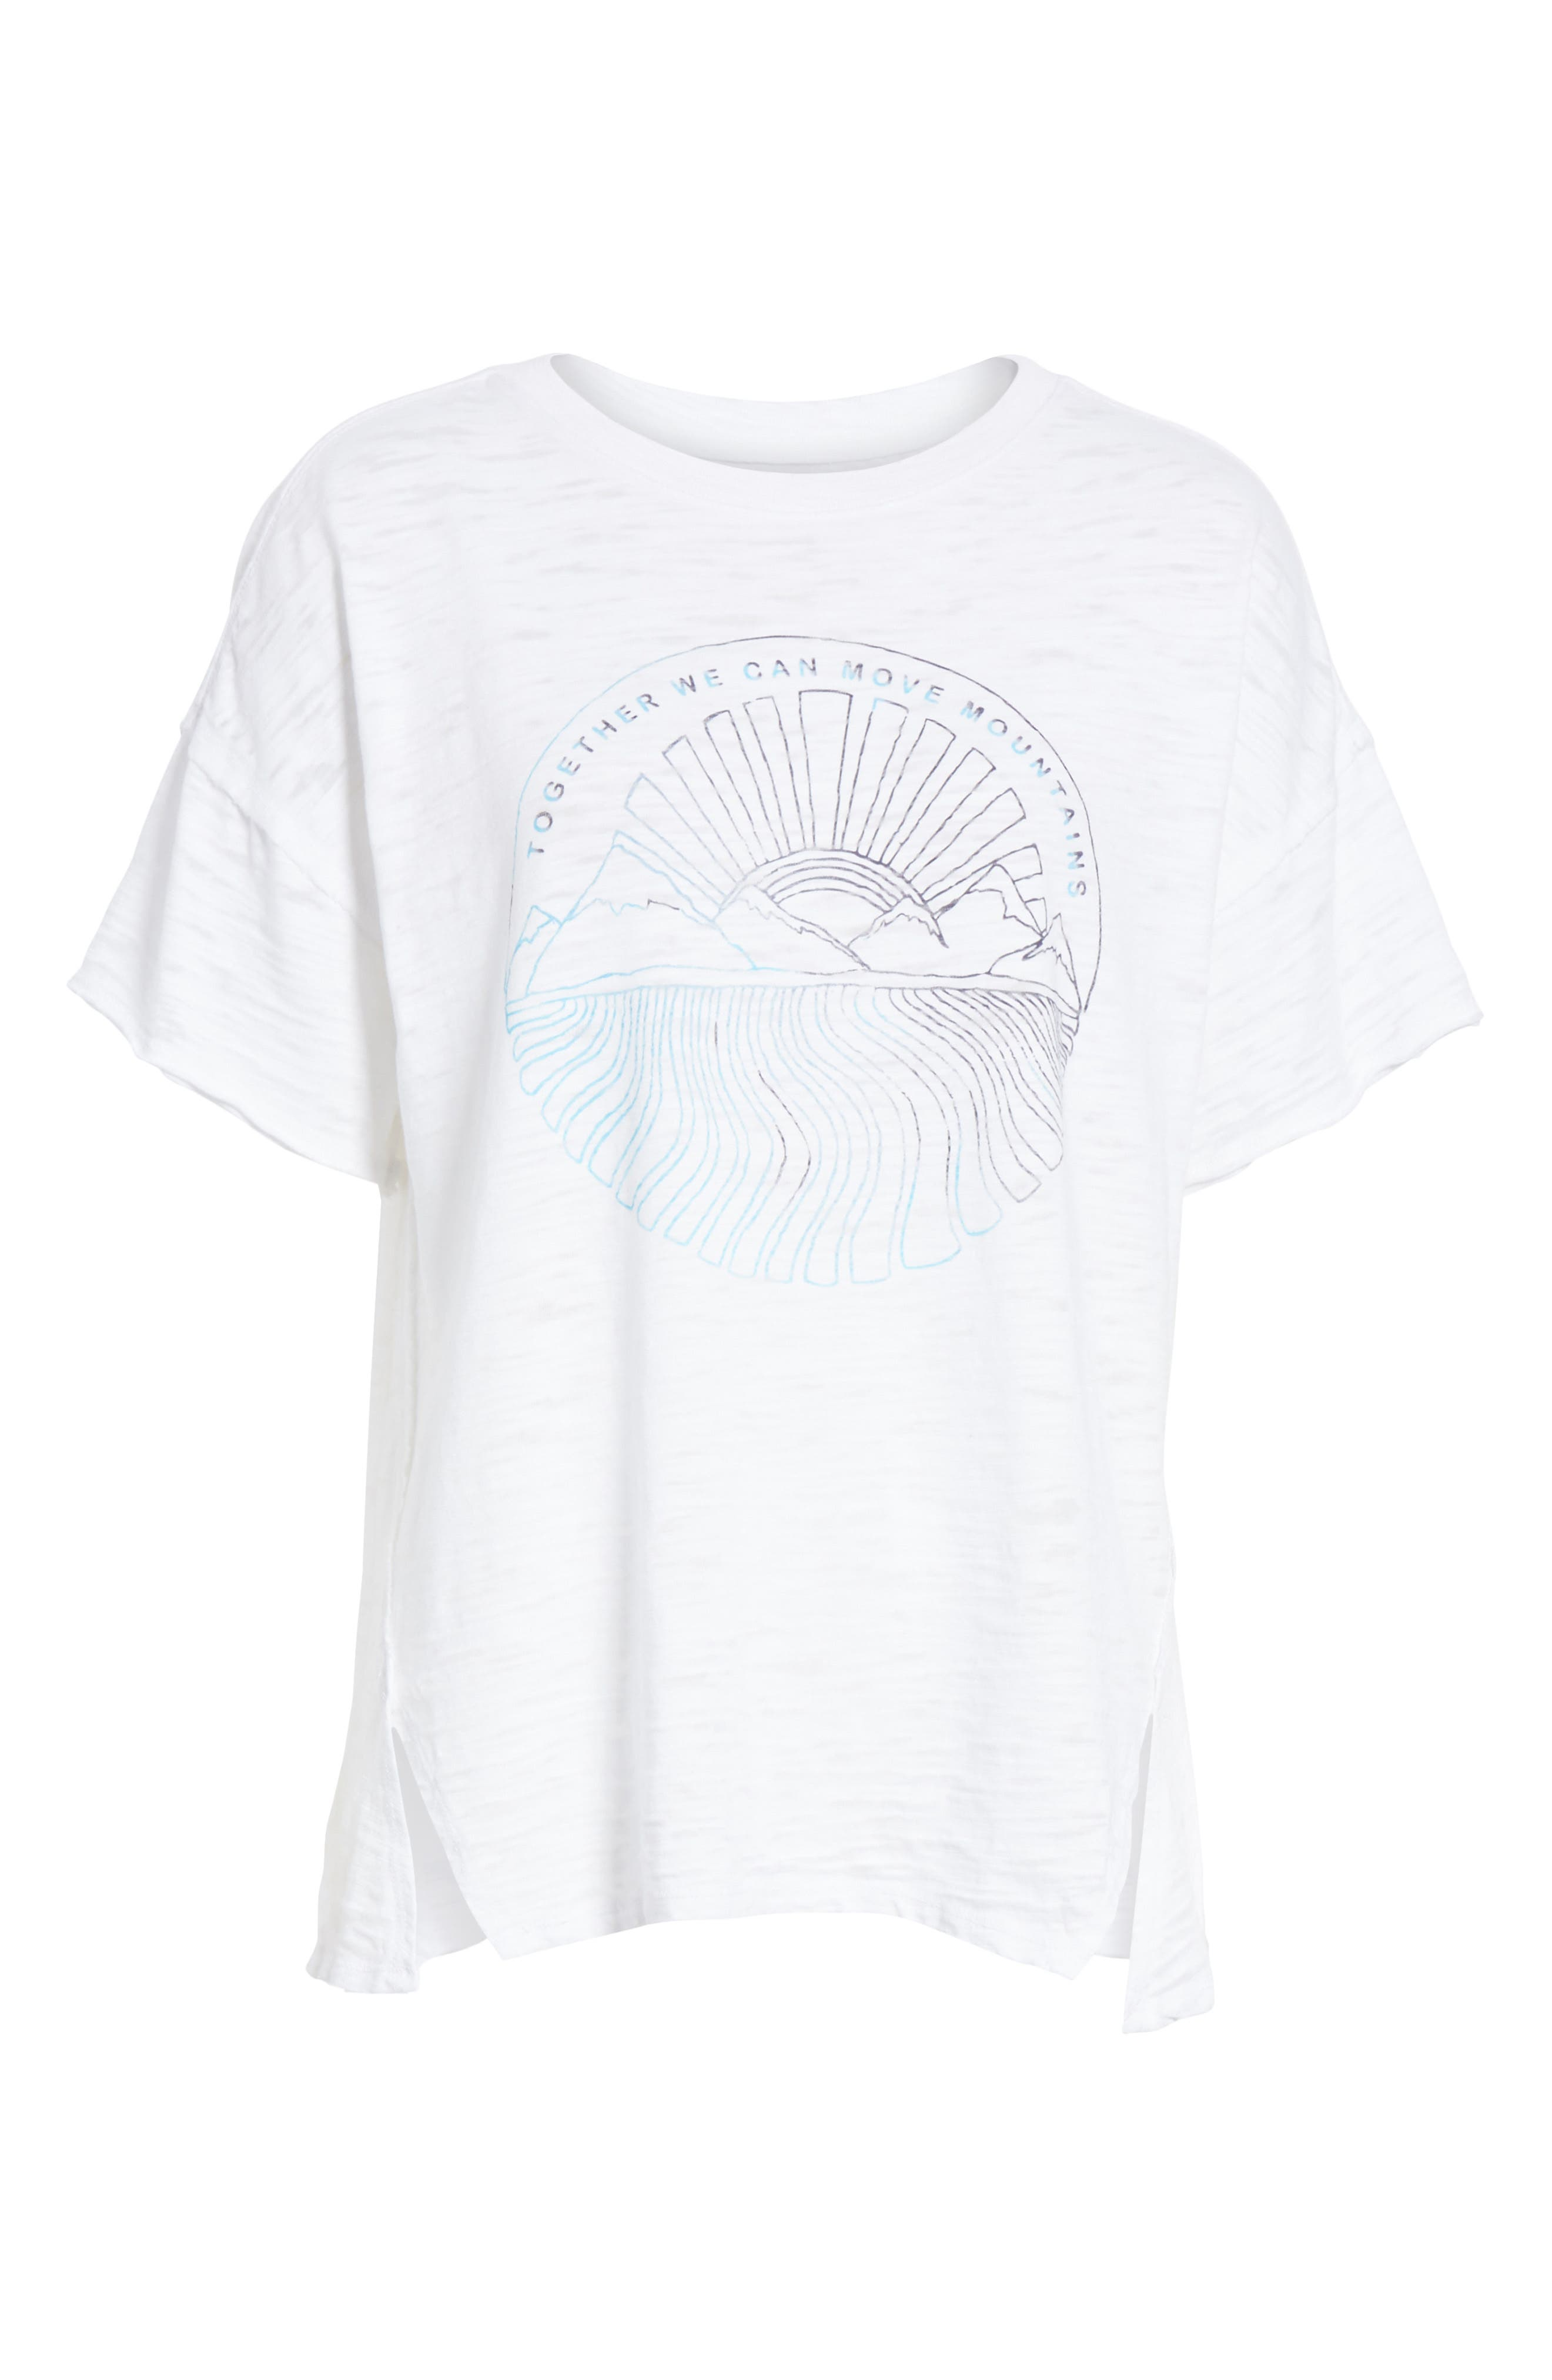 Graphic Tee,                             Alternate thumbnail 6, color,                             White